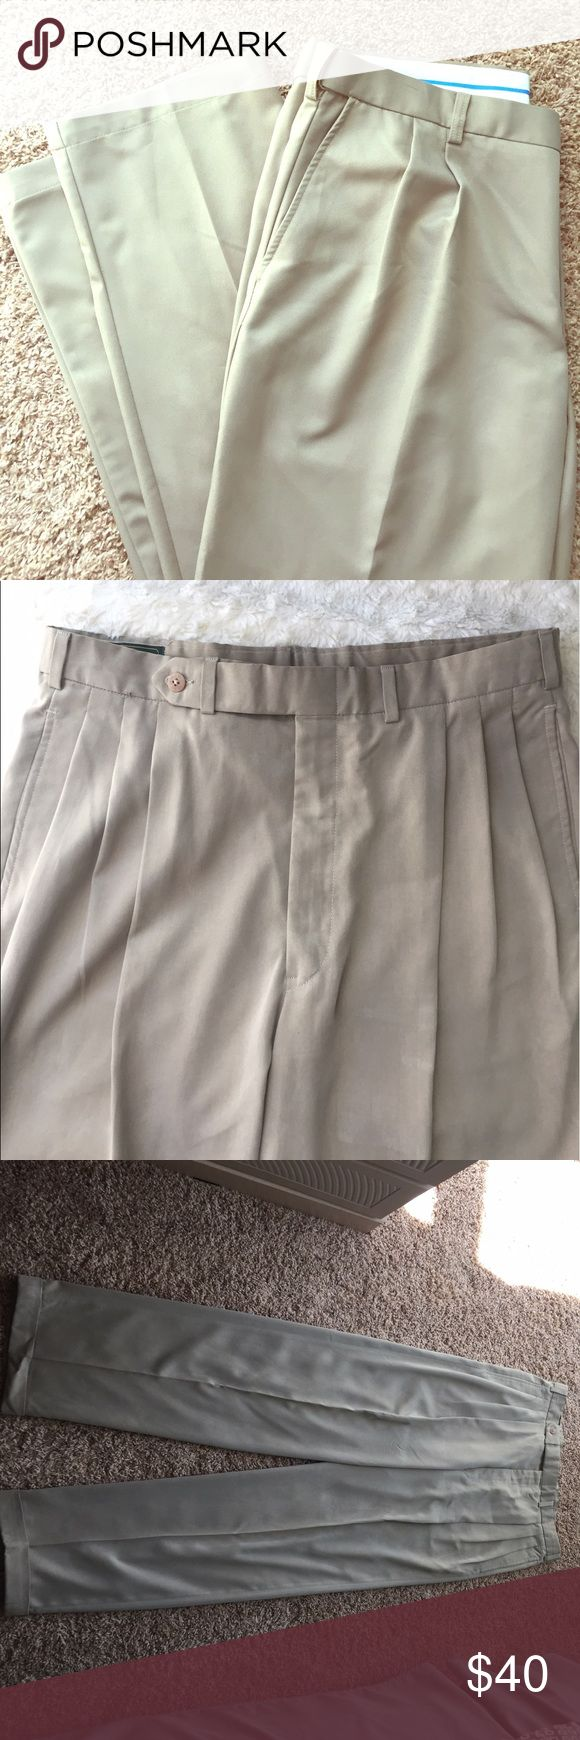 "Men's Khaki Pants Men's Khaki Pants. Waist Size 34. Inseam is about 34"". Length from the top of the pants down is 46"". Bobby Jones Pants Chinos & Khakis"